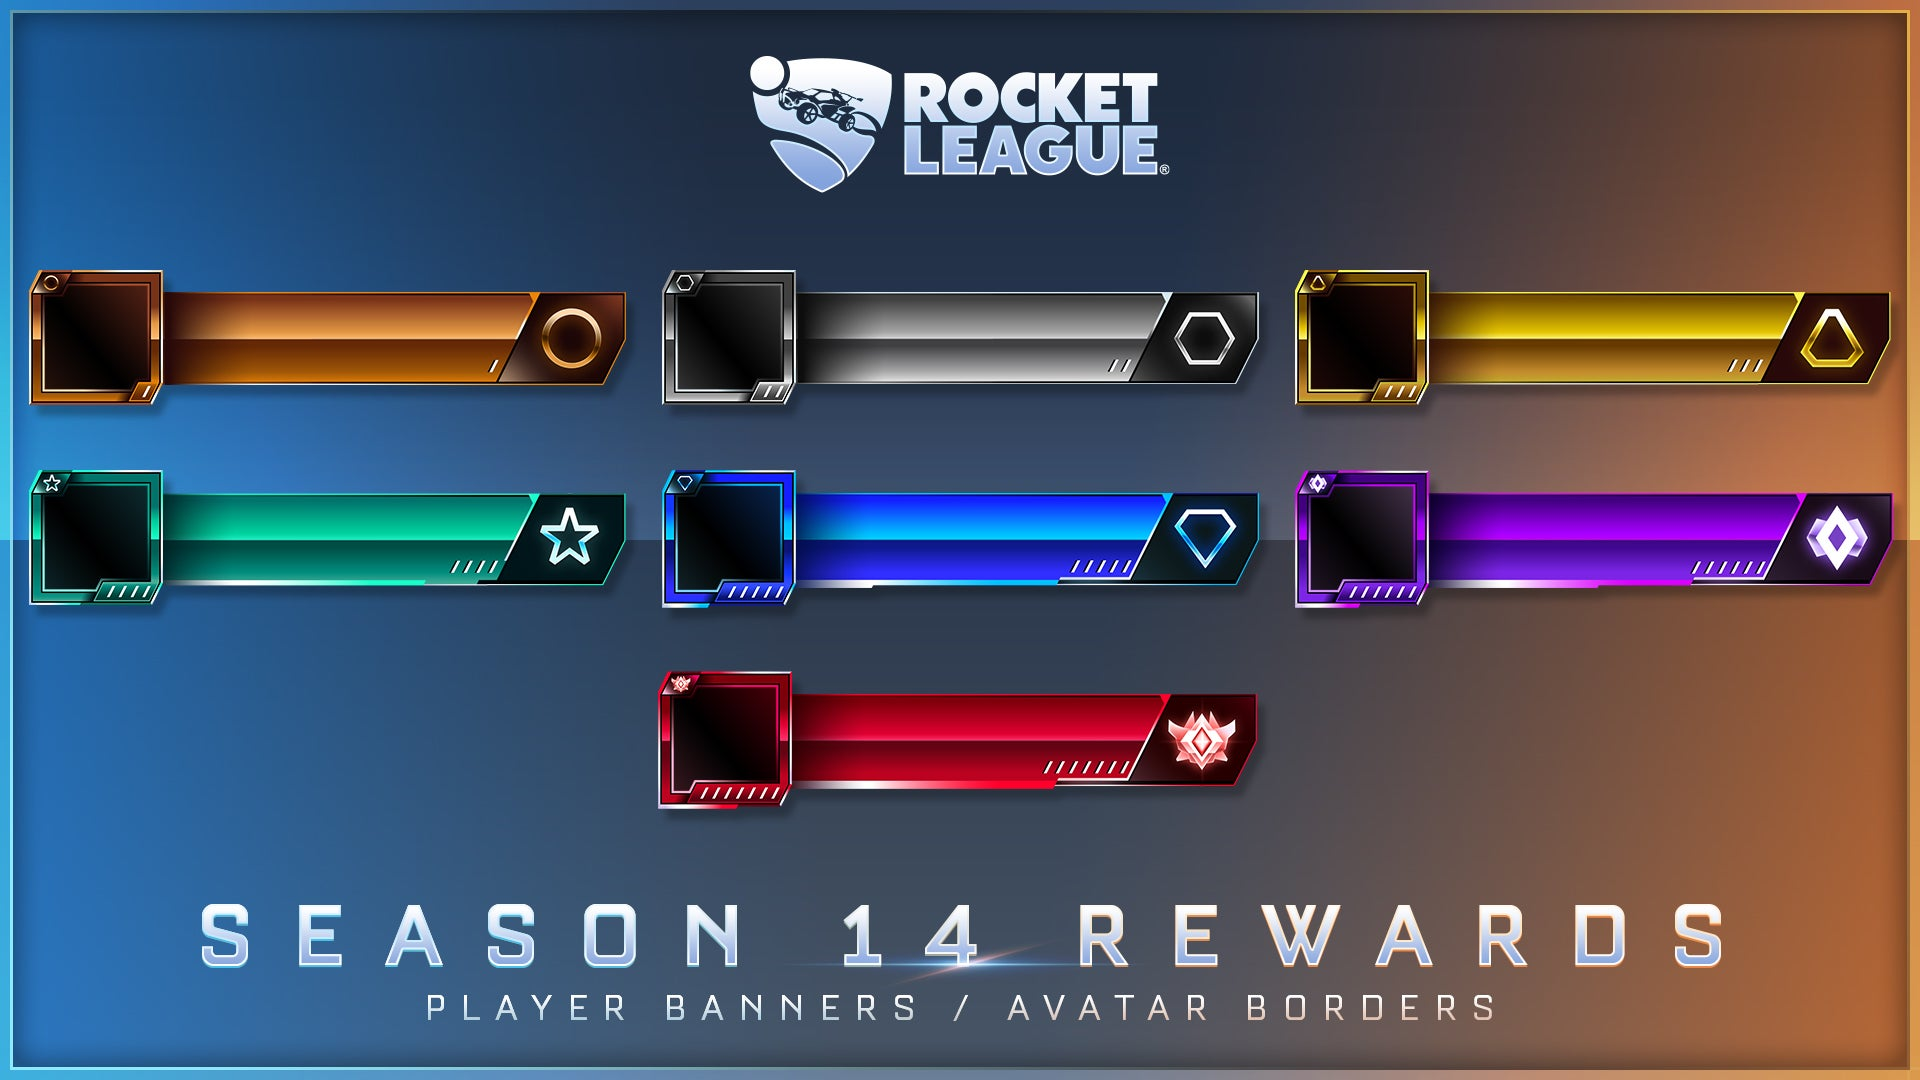 Season 14 Rewards